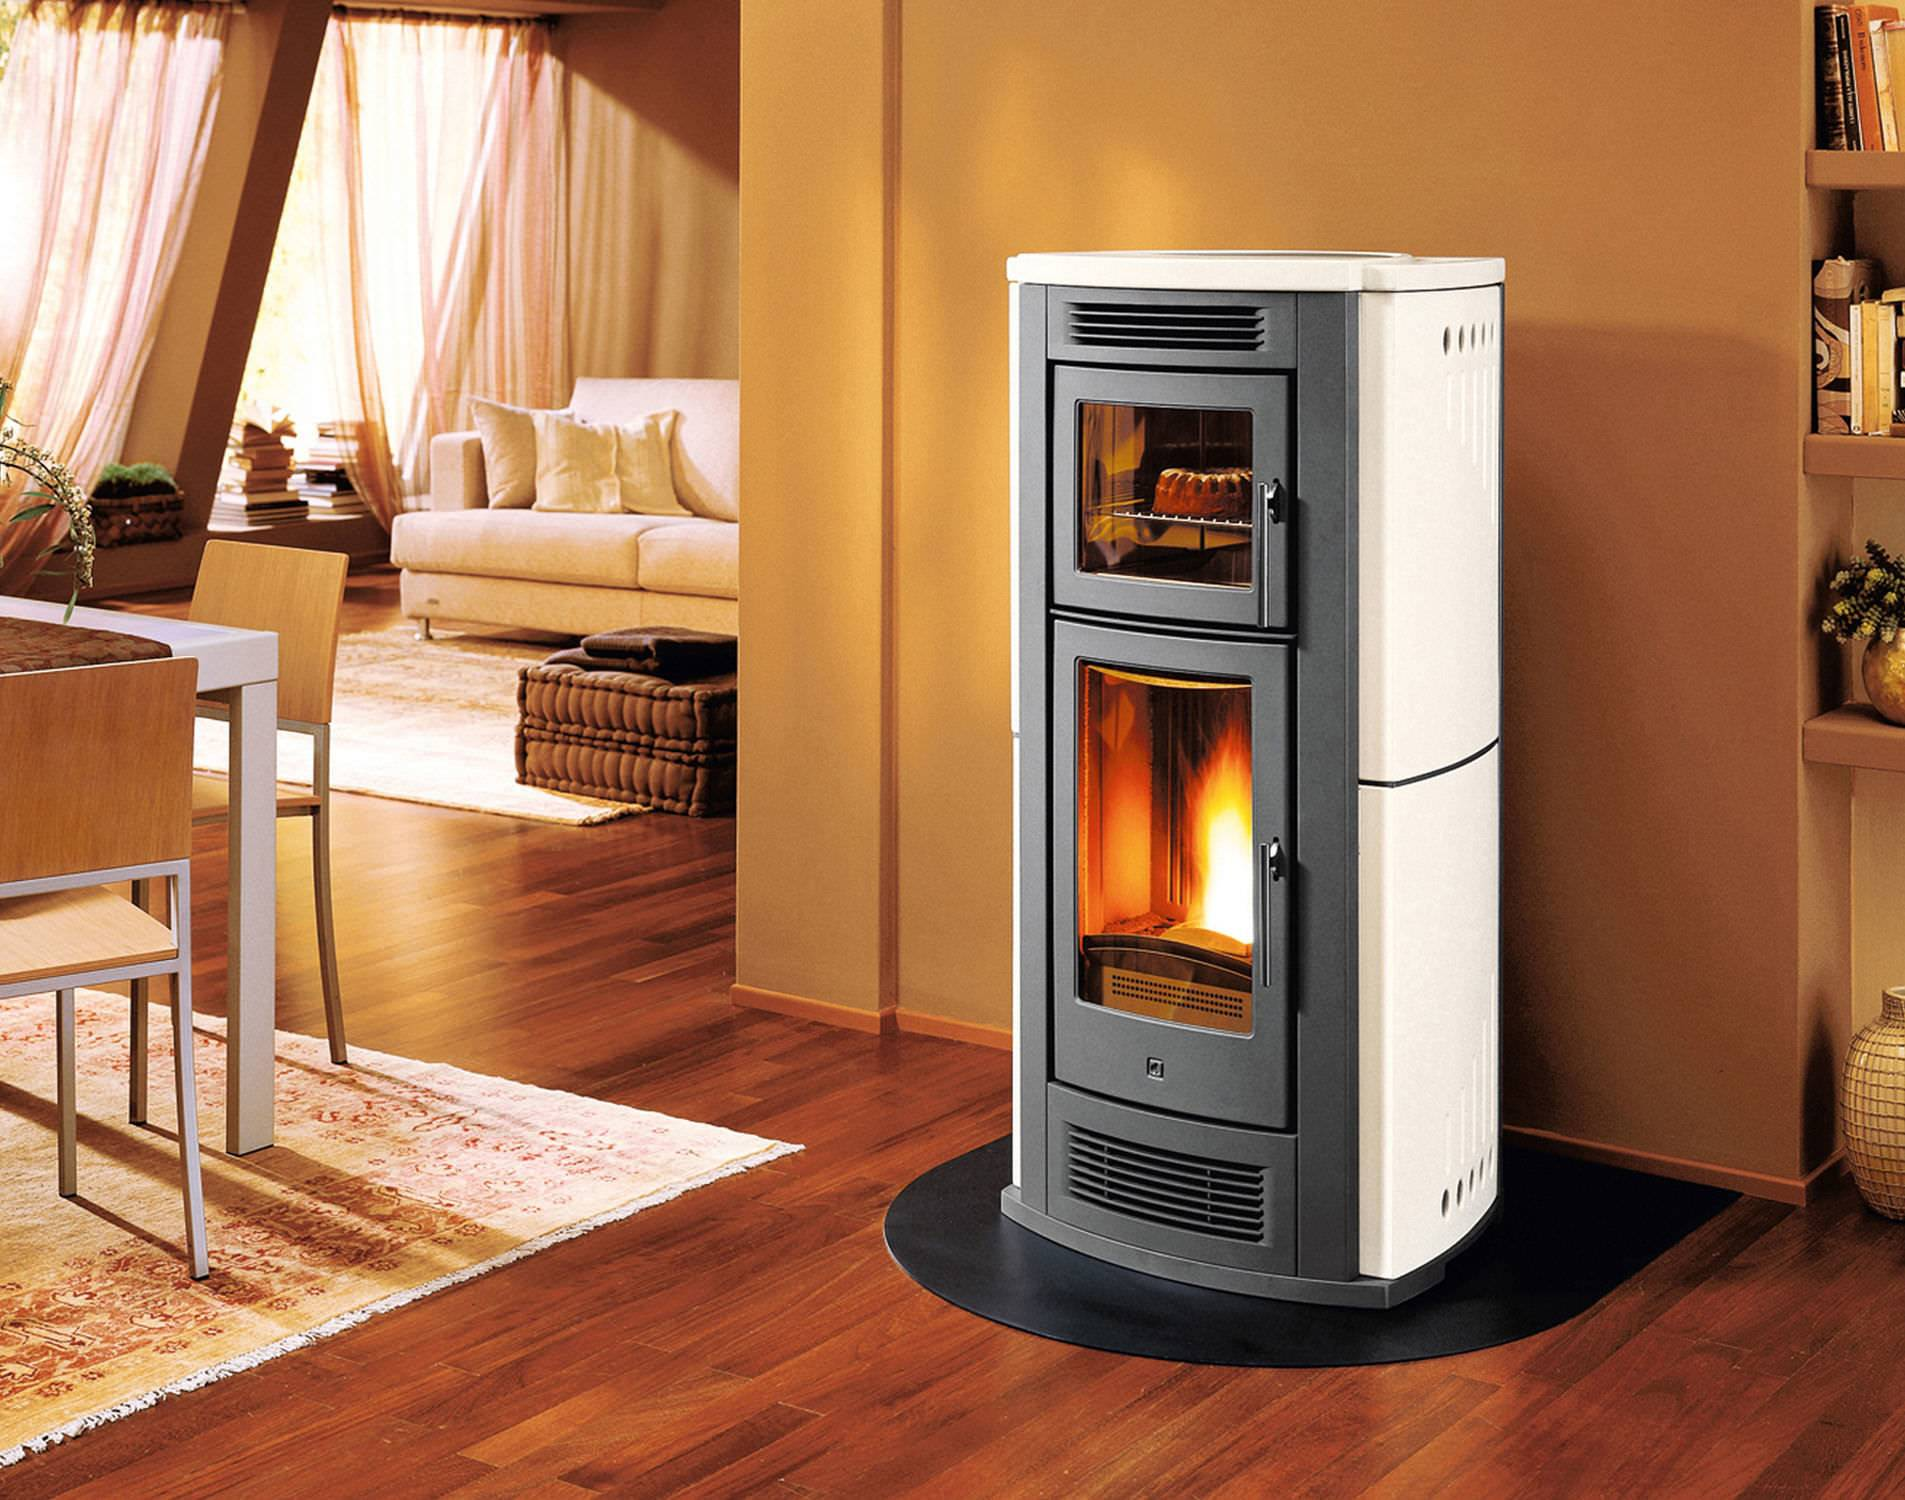 Modern Pellet Stove Home Gear Reviews